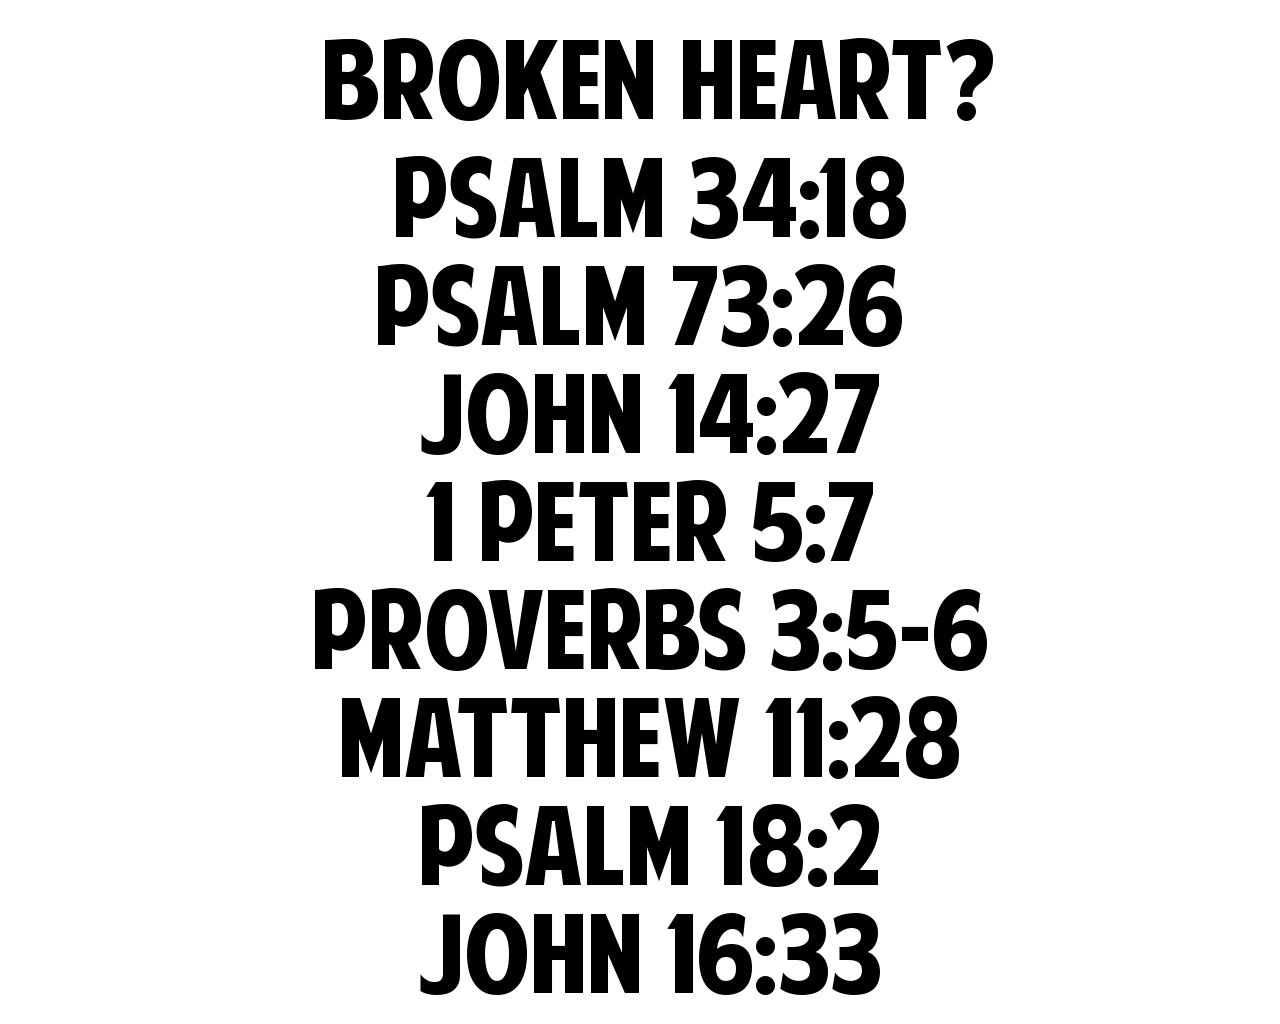 When Two Broken Hearts Meet Quotes: God Can Heal A Broken Heart Quotes. QuotesGram